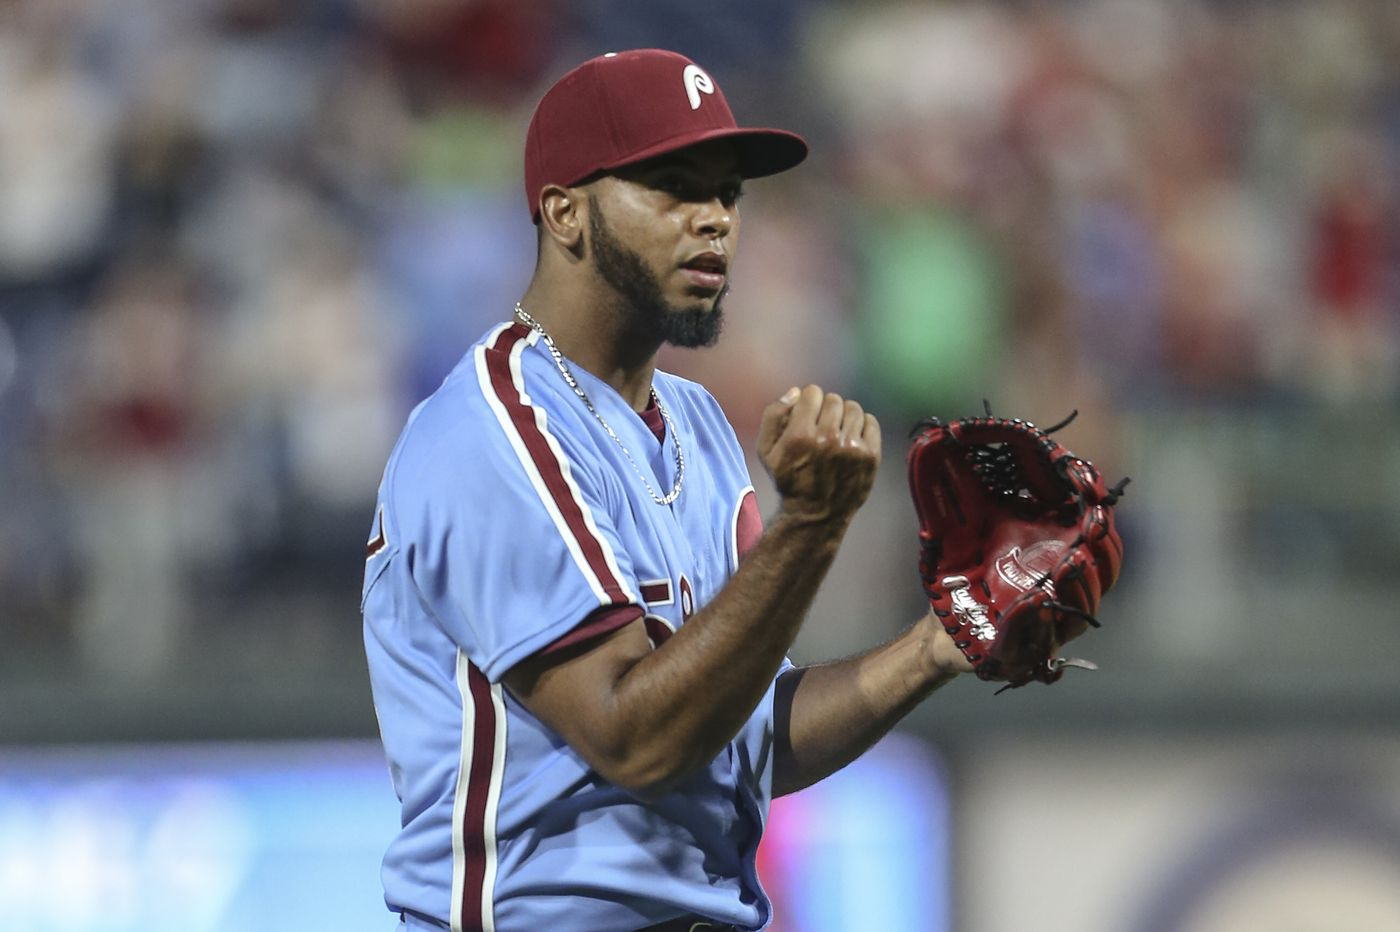 Seranthony Dominguez proves he has the short memory required to be an excellent reliever   Extra Innings